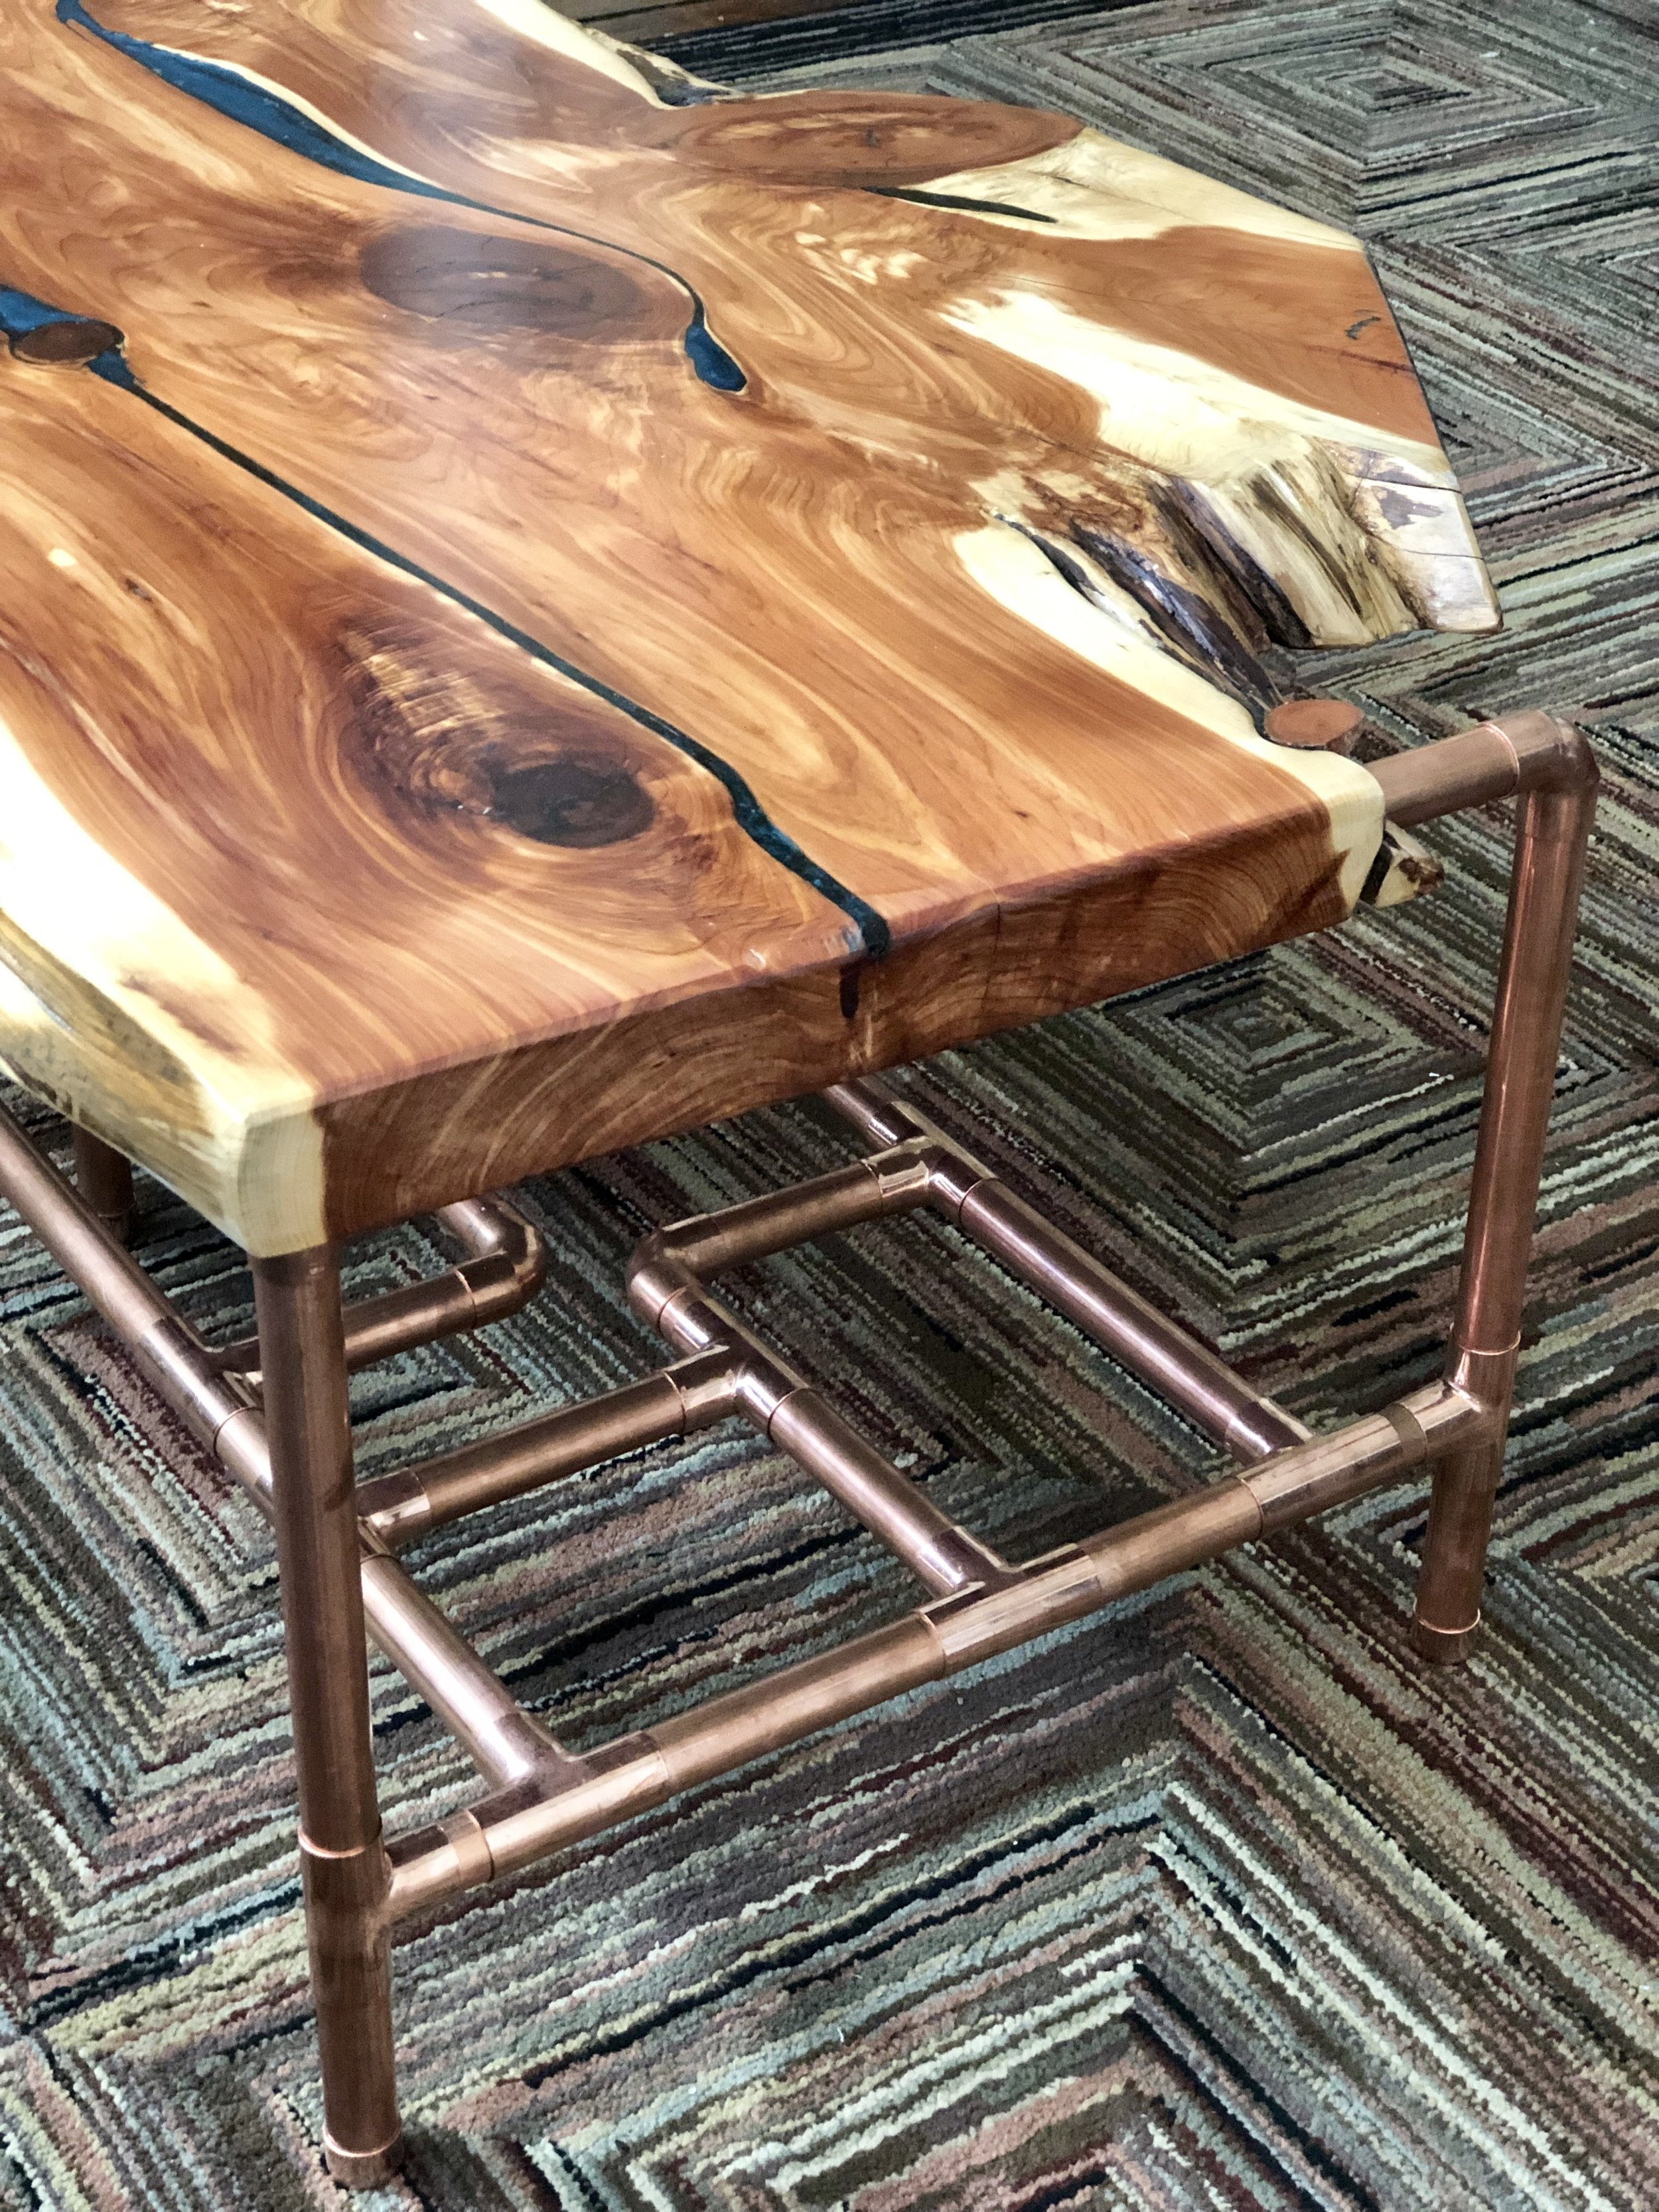 Sallie Plumley Studio Aromatic Cedar and Copper Pipe Coffee Table with Malachite Resin Inlay 16.jpg